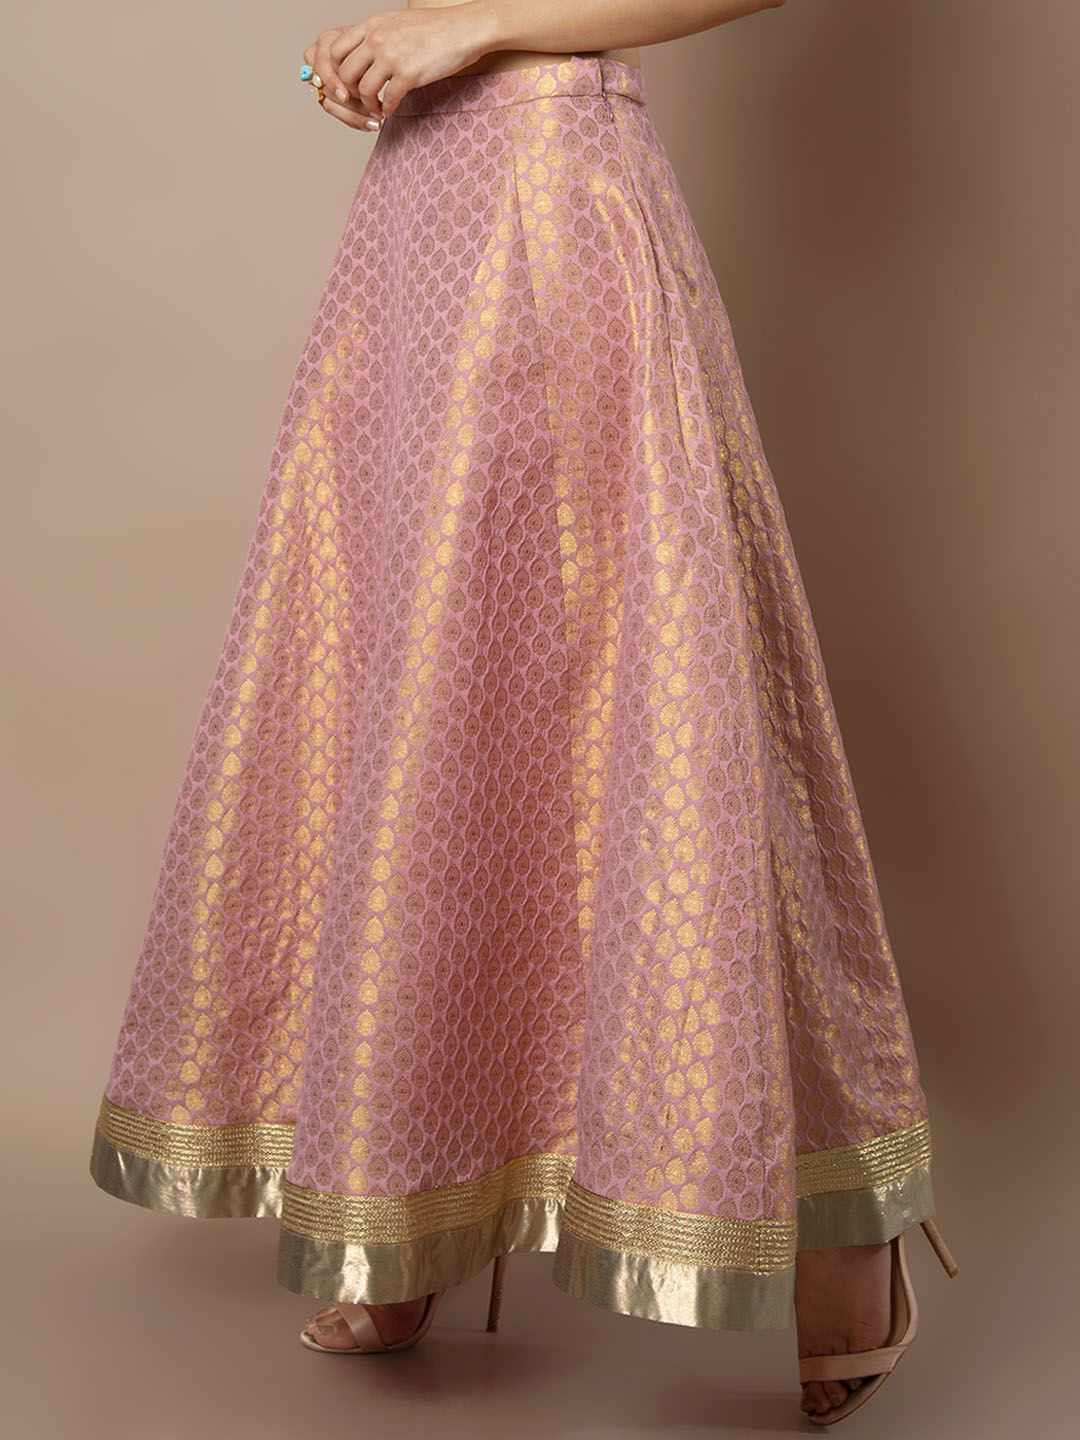 770d799f3 Buy INDYA Women Pink Panelled Brocade Flared Maxi Skirt - Skirts for Women  7503524 | Myntra